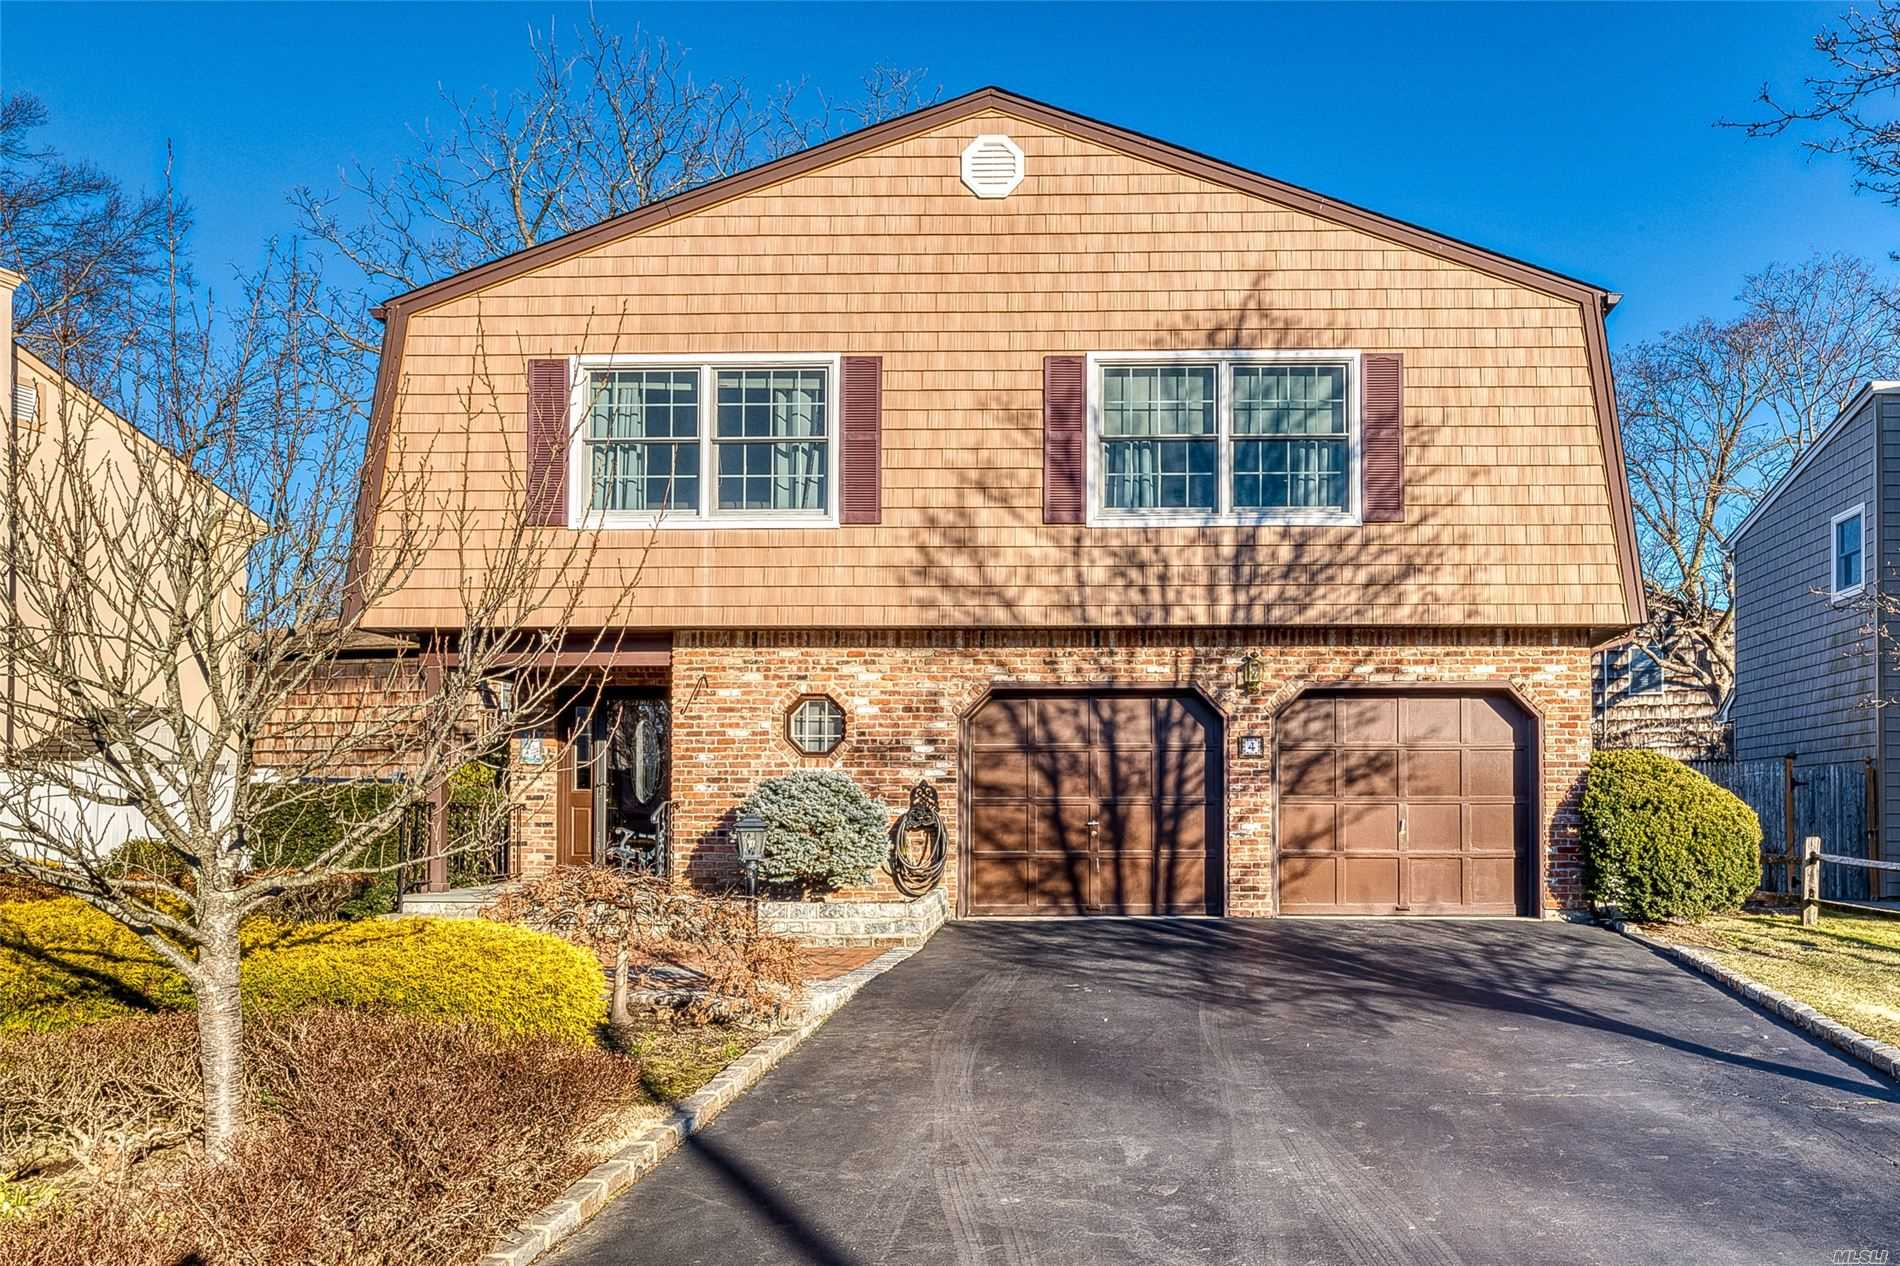 Sunny & spacious home on a quiet tree lined cul de sac.Featuring 4 Bedroom, 3 full baths, eat in kitchen, master bedroom with master bath.Main floor level features den with fireplace, Bedroom, Bathroom, Laundry.Enjoy Glen Head living with nearby parks, Tappen Beach, LIRR .North Shore Schools, Blue Ribbon-Glenwood Landing Elementary-